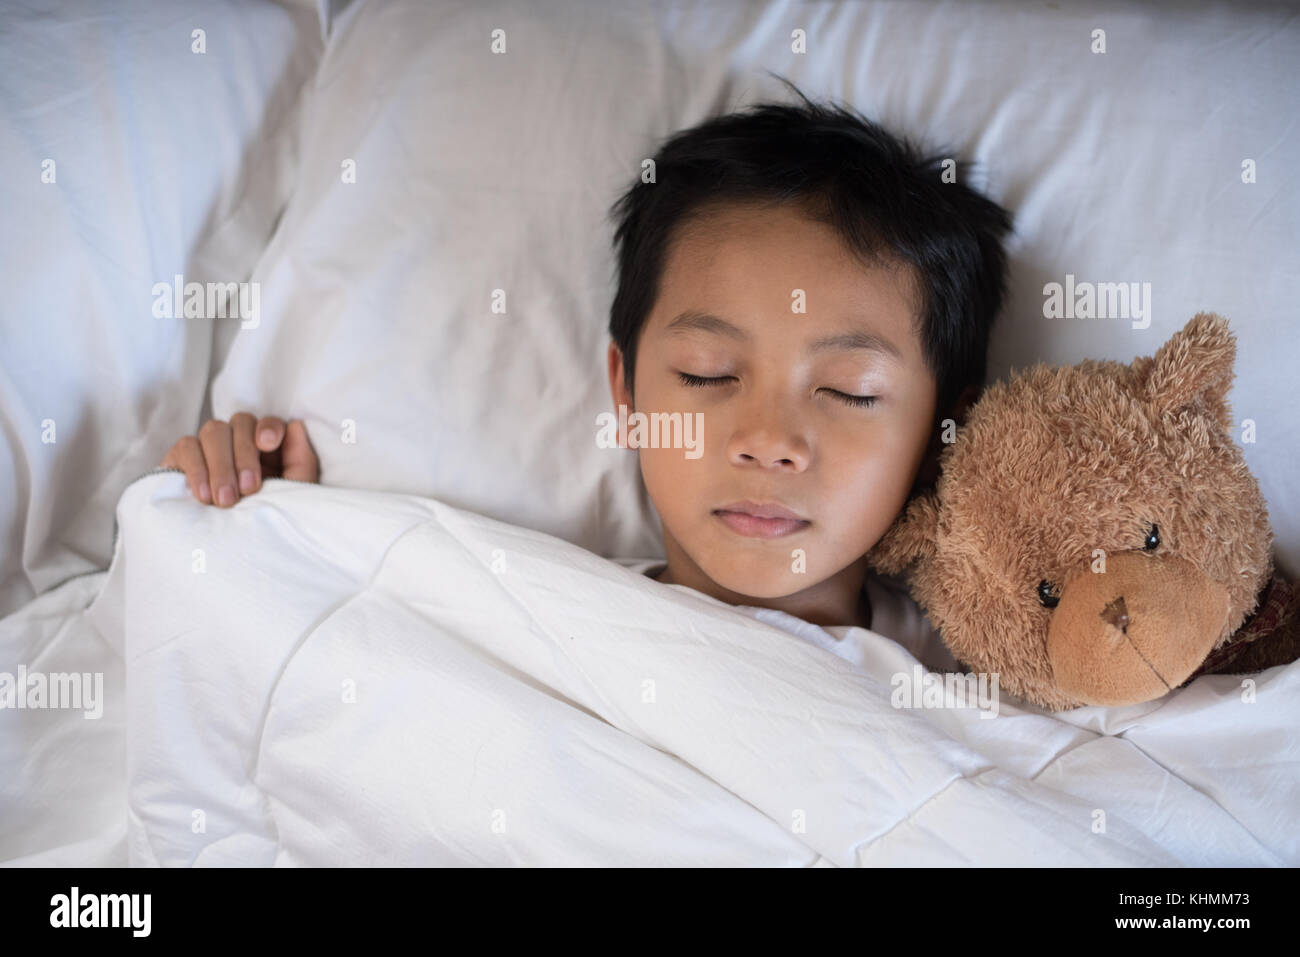 boy sleeping on bed with teddy bear white pillow and sheets.boy fall asleep in morning.sleep concept - Stock Image